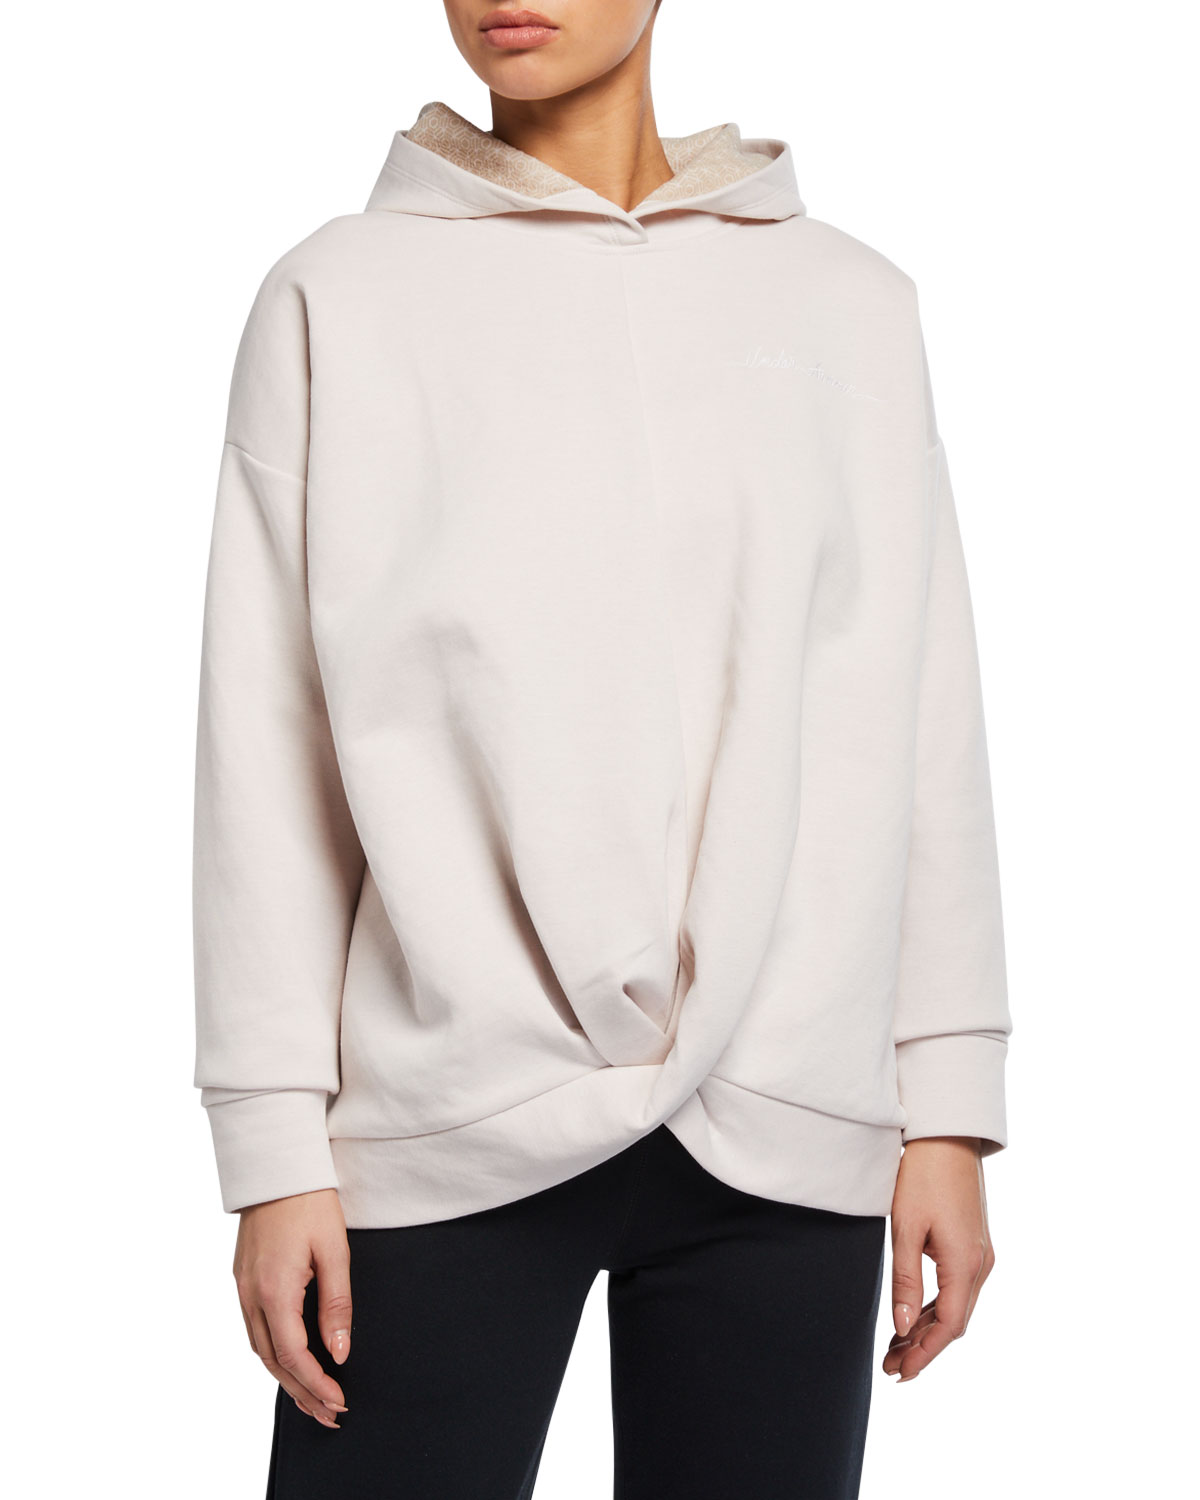 Under Armour T-shirts RECOVERY FLEECE WRAP-FRONT HOODIE SWEATSHIRT